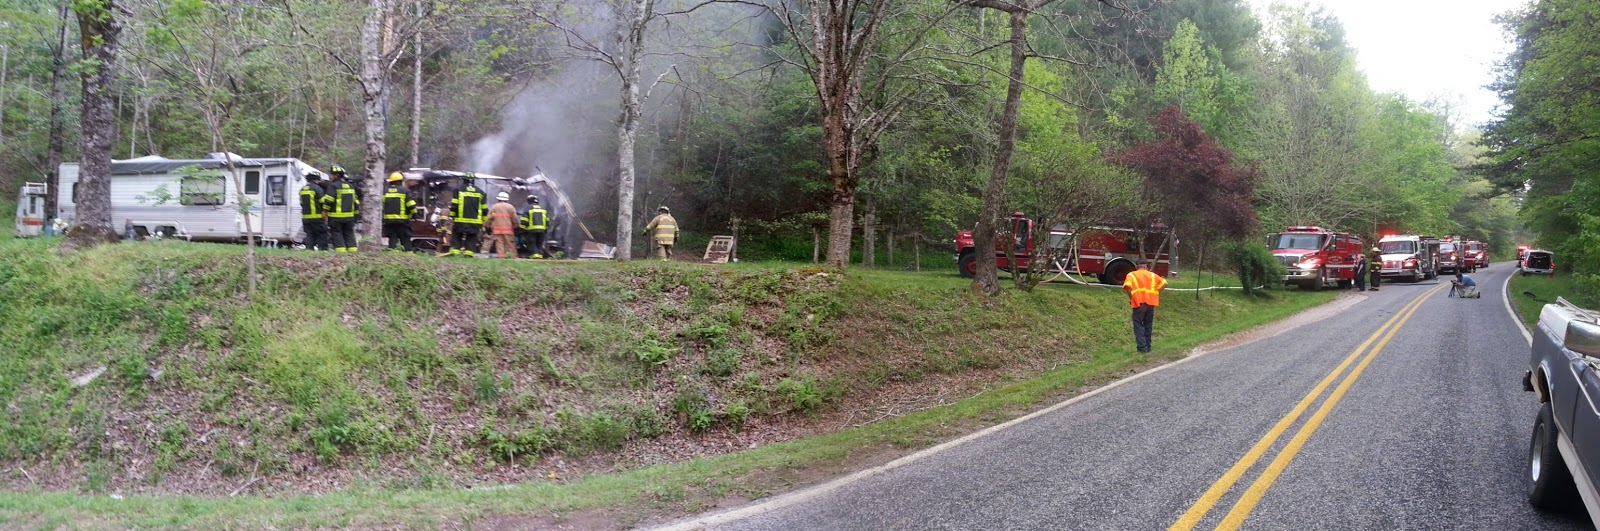 Panoramic shot of the fire scene